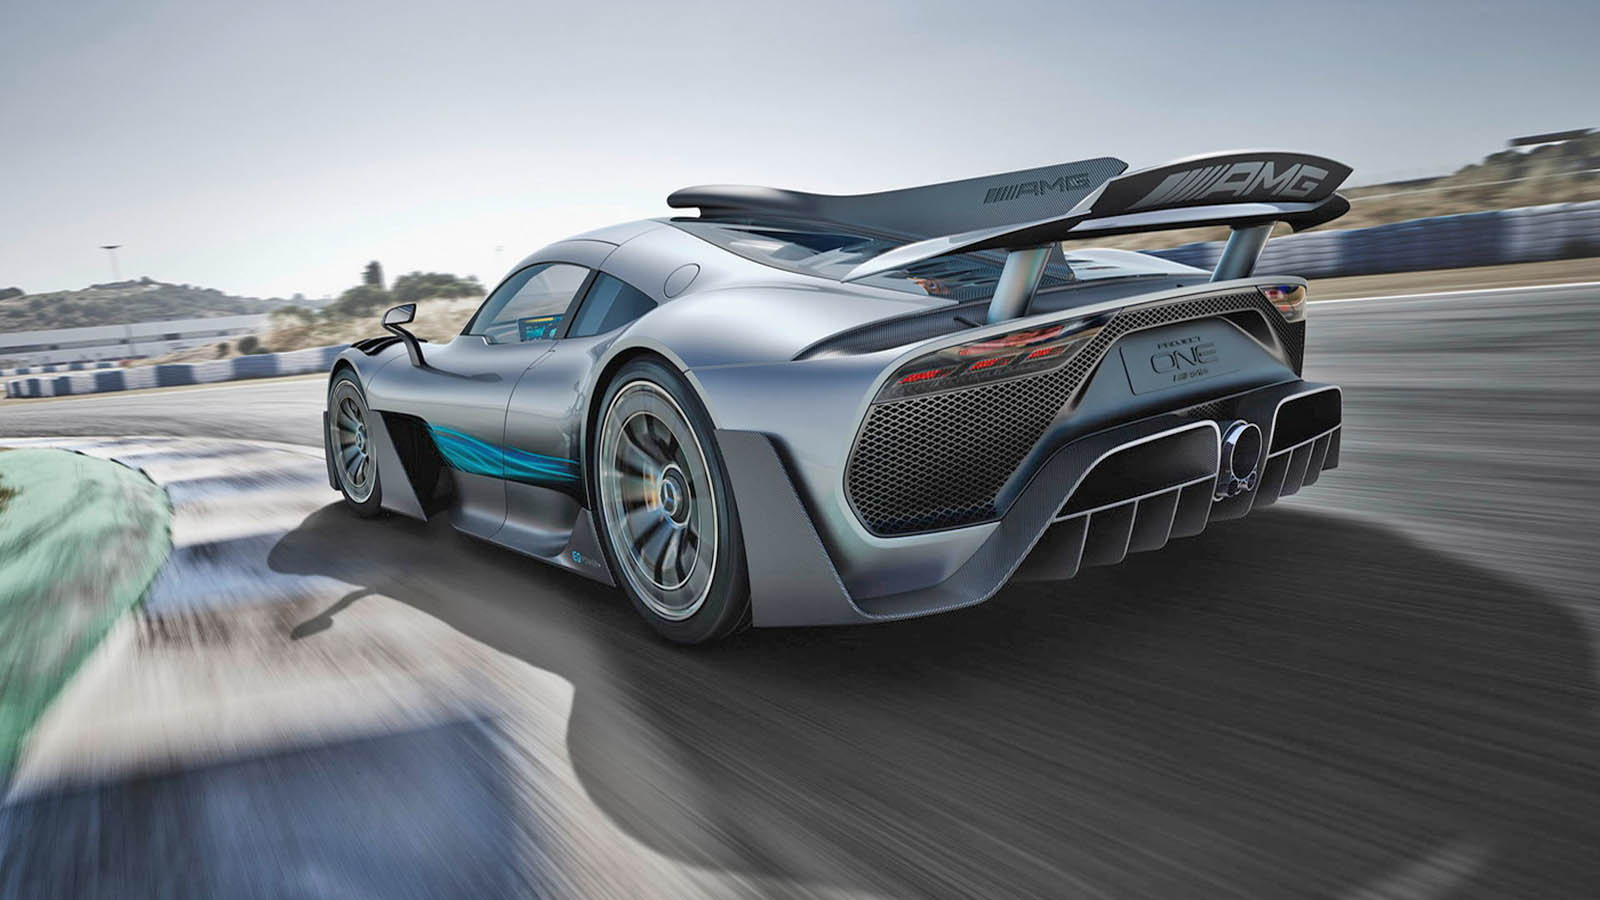 No Allowance of Flip Sales for AMG Project One